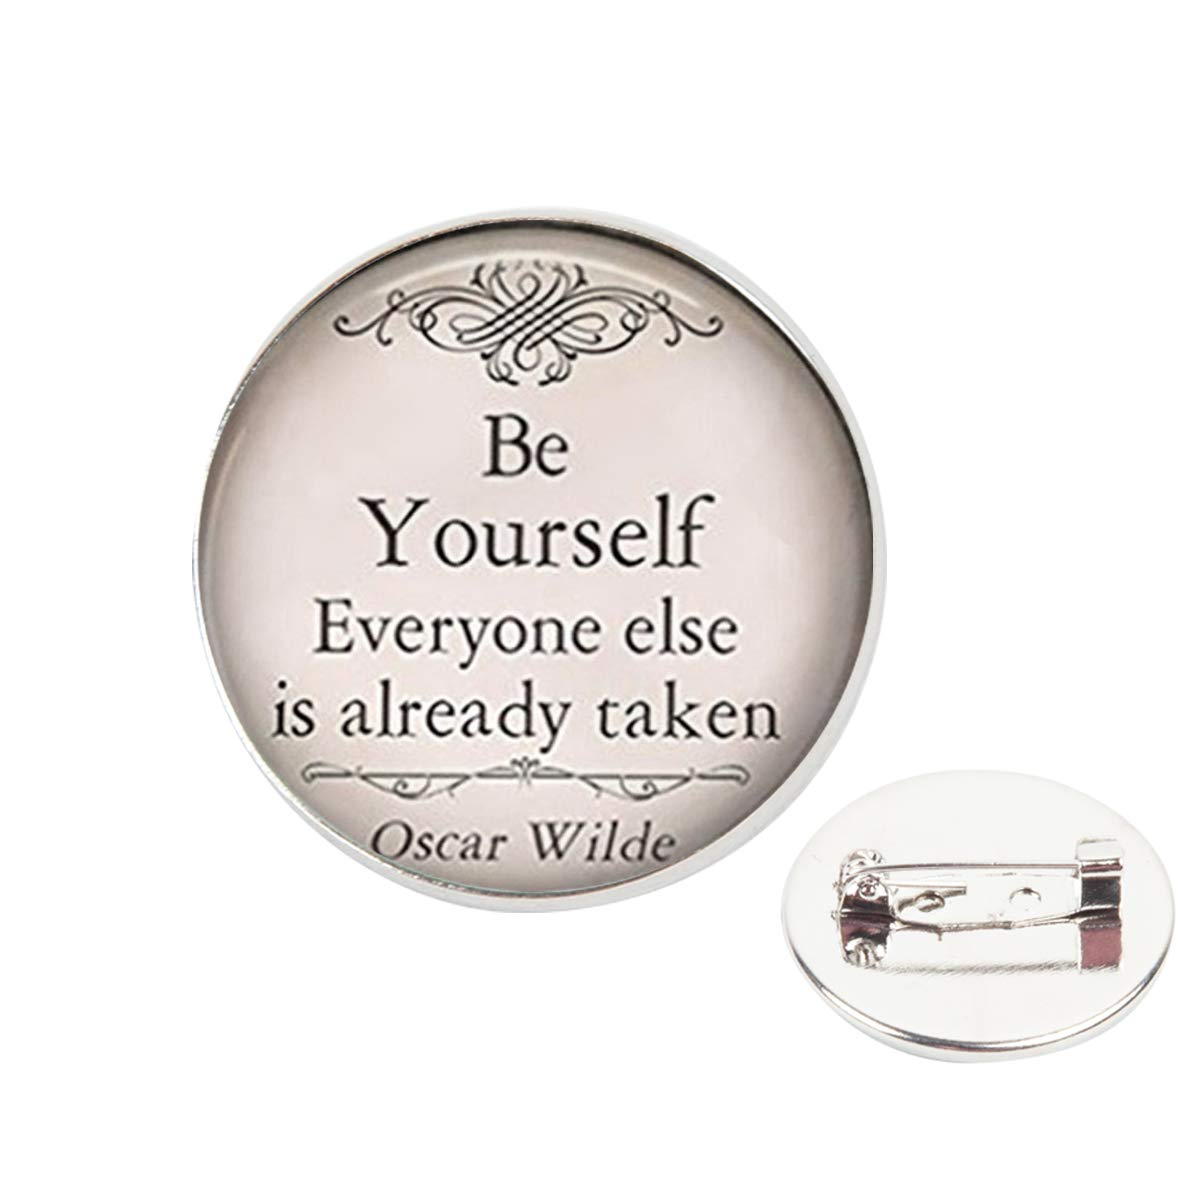 Pinback Buttons Badges Pins Be Yourself Quote Lapel Pin Brooch Clip Trendy Accessory Jacket T-Shirt Bag Hat Shoe